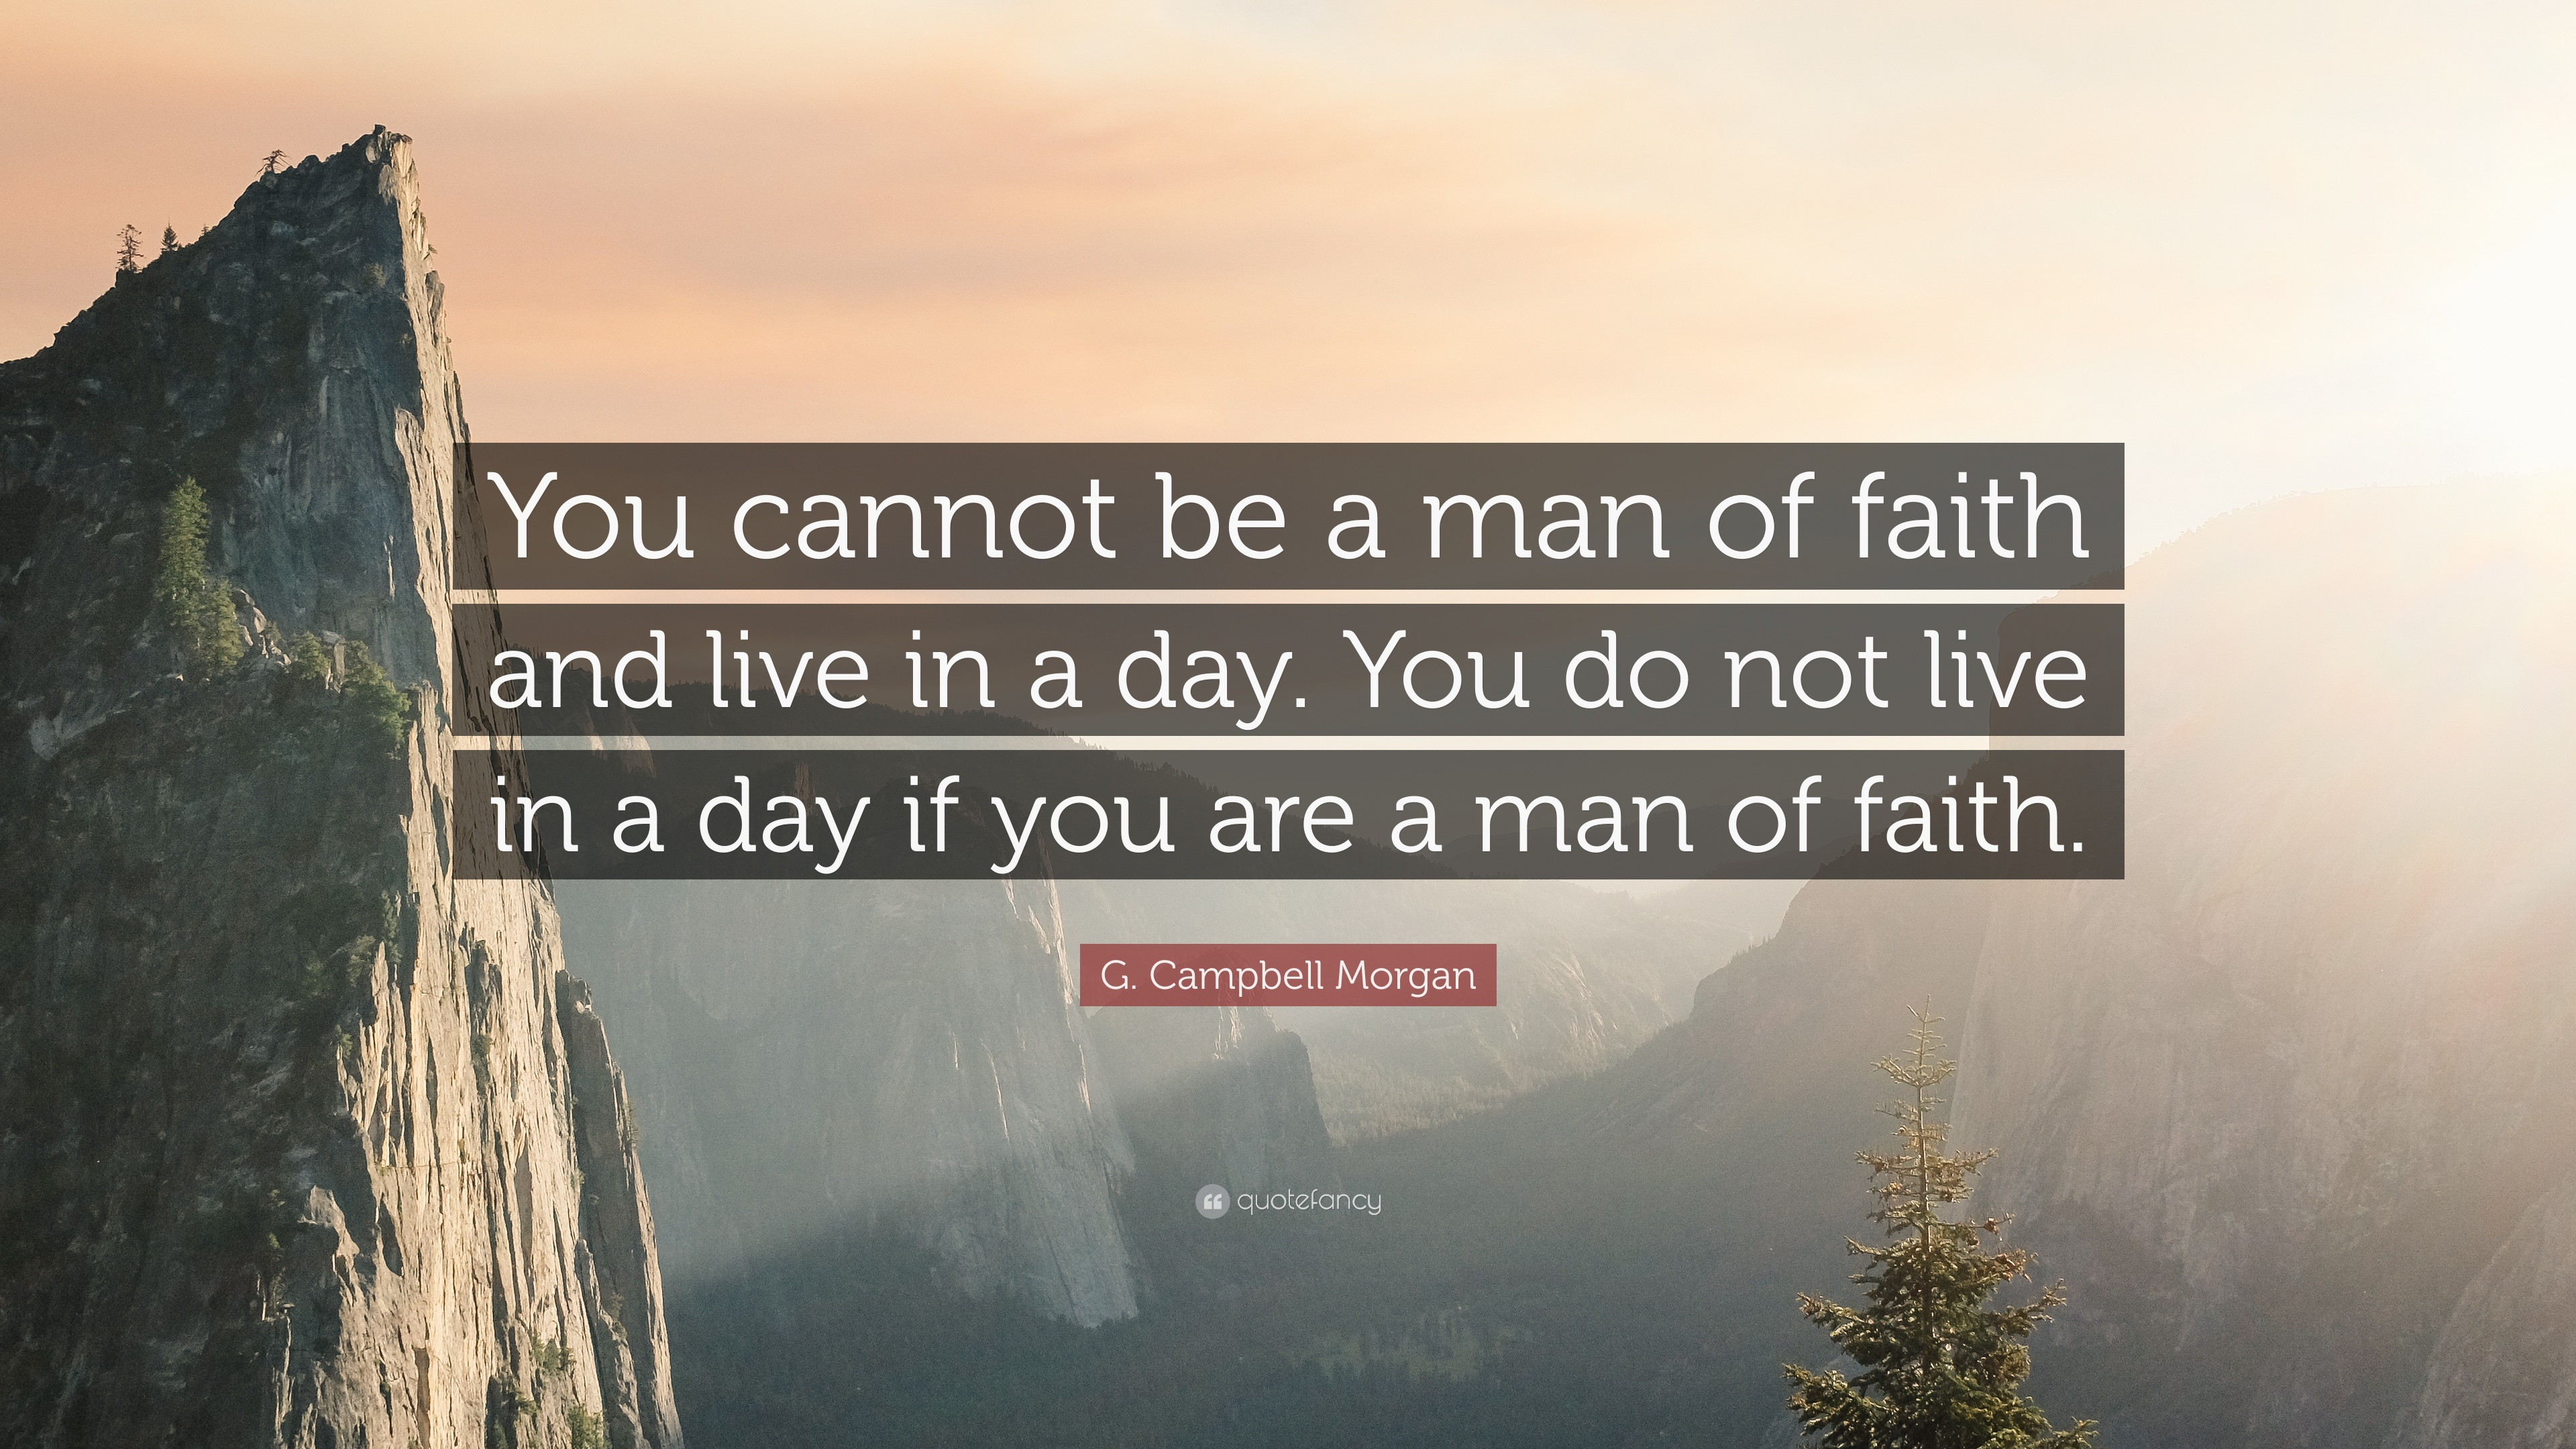 G campbell morgan quote you cannot be a man of faith and live